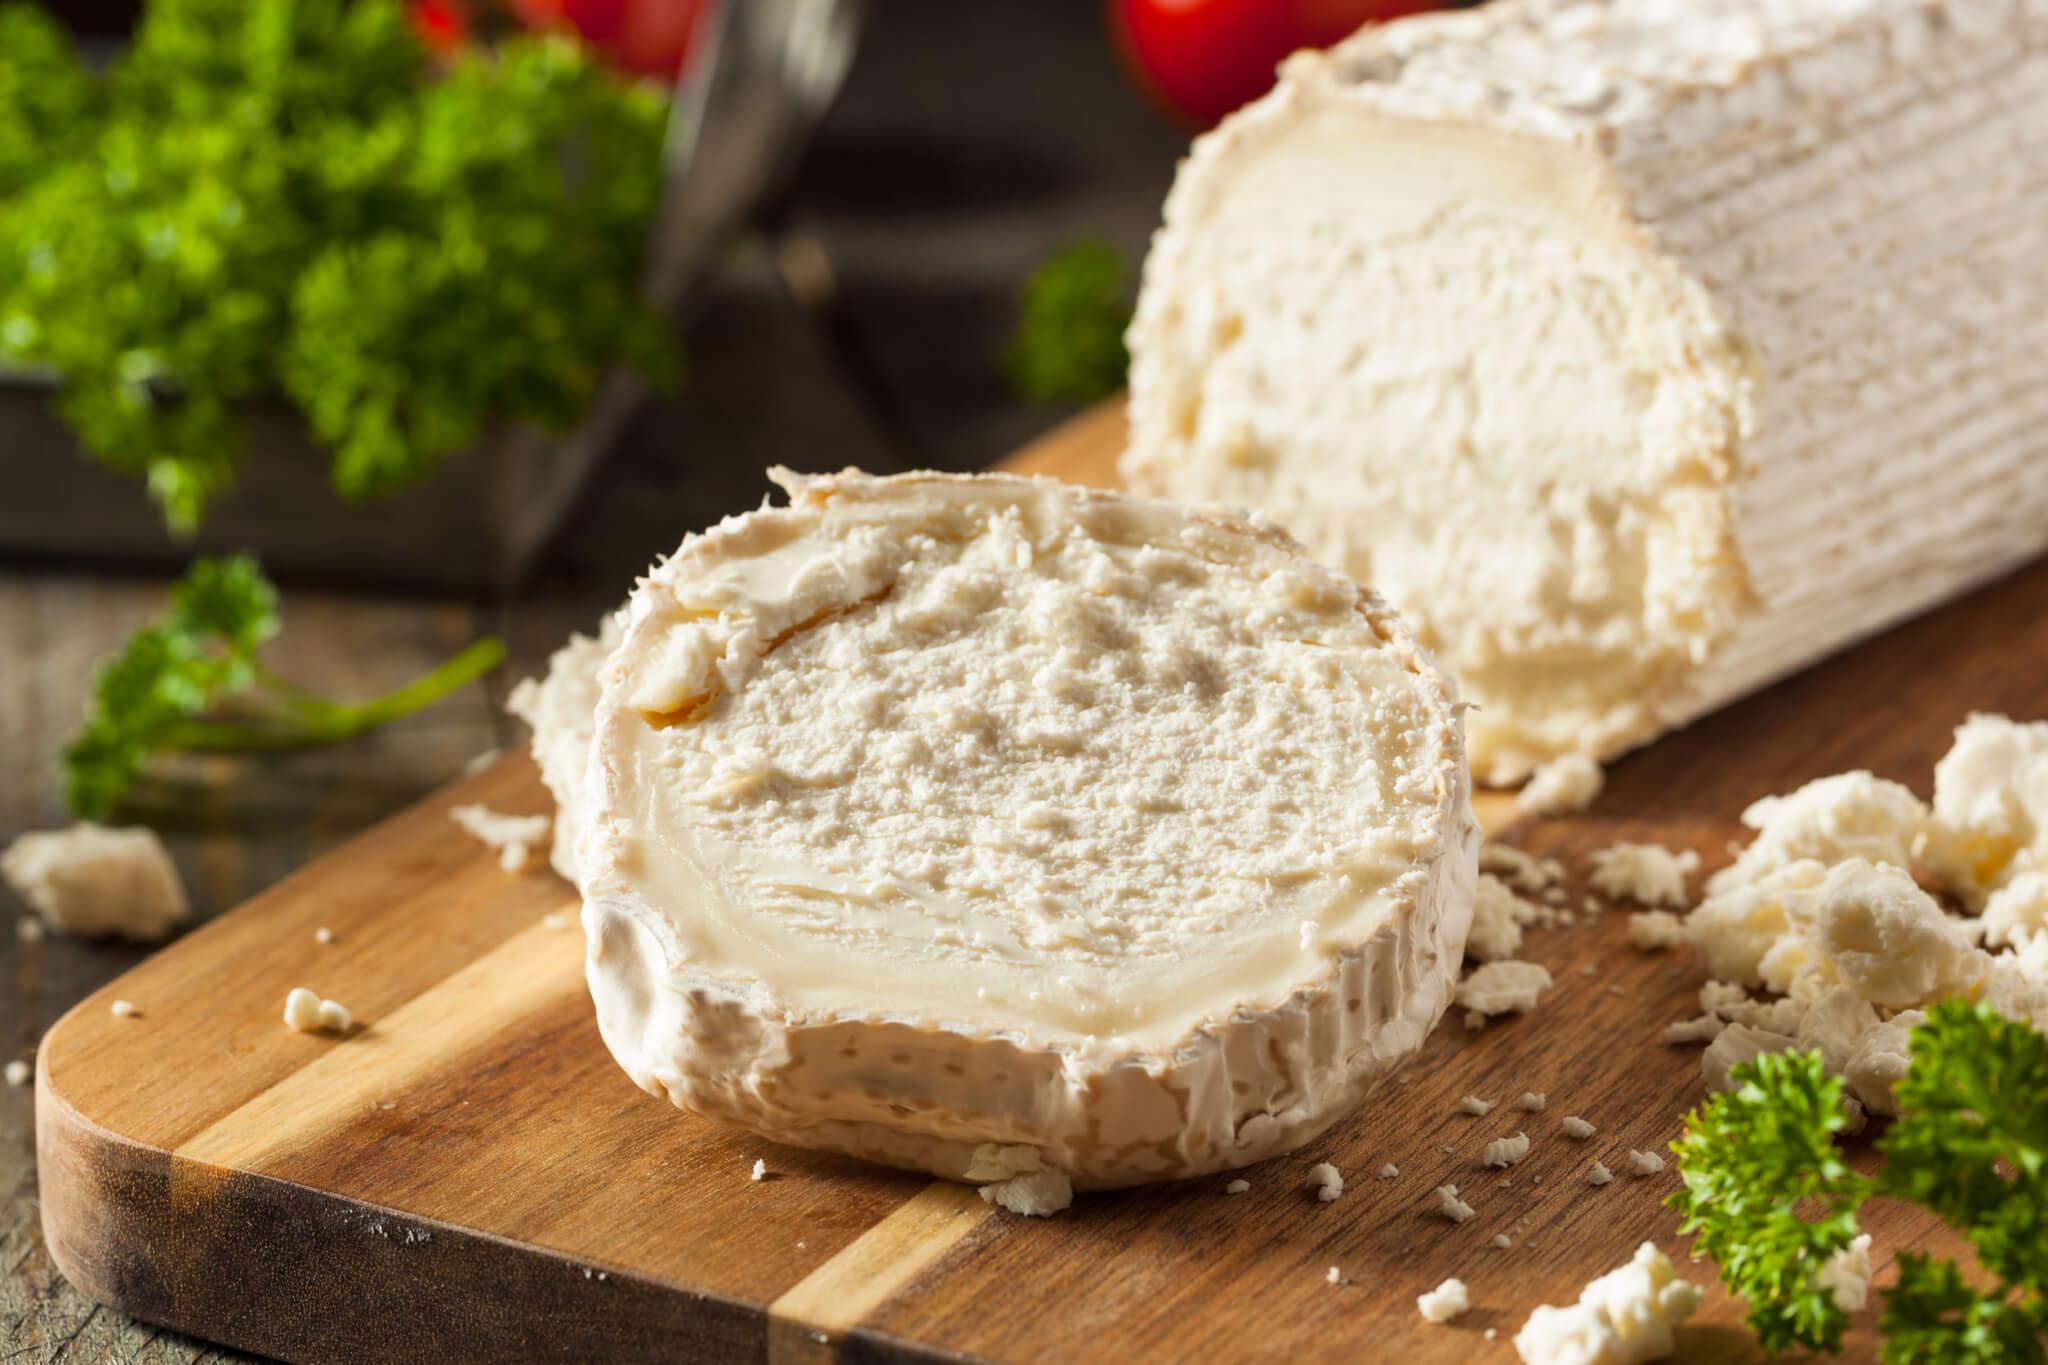 Does Goat Cheese Have Casein?